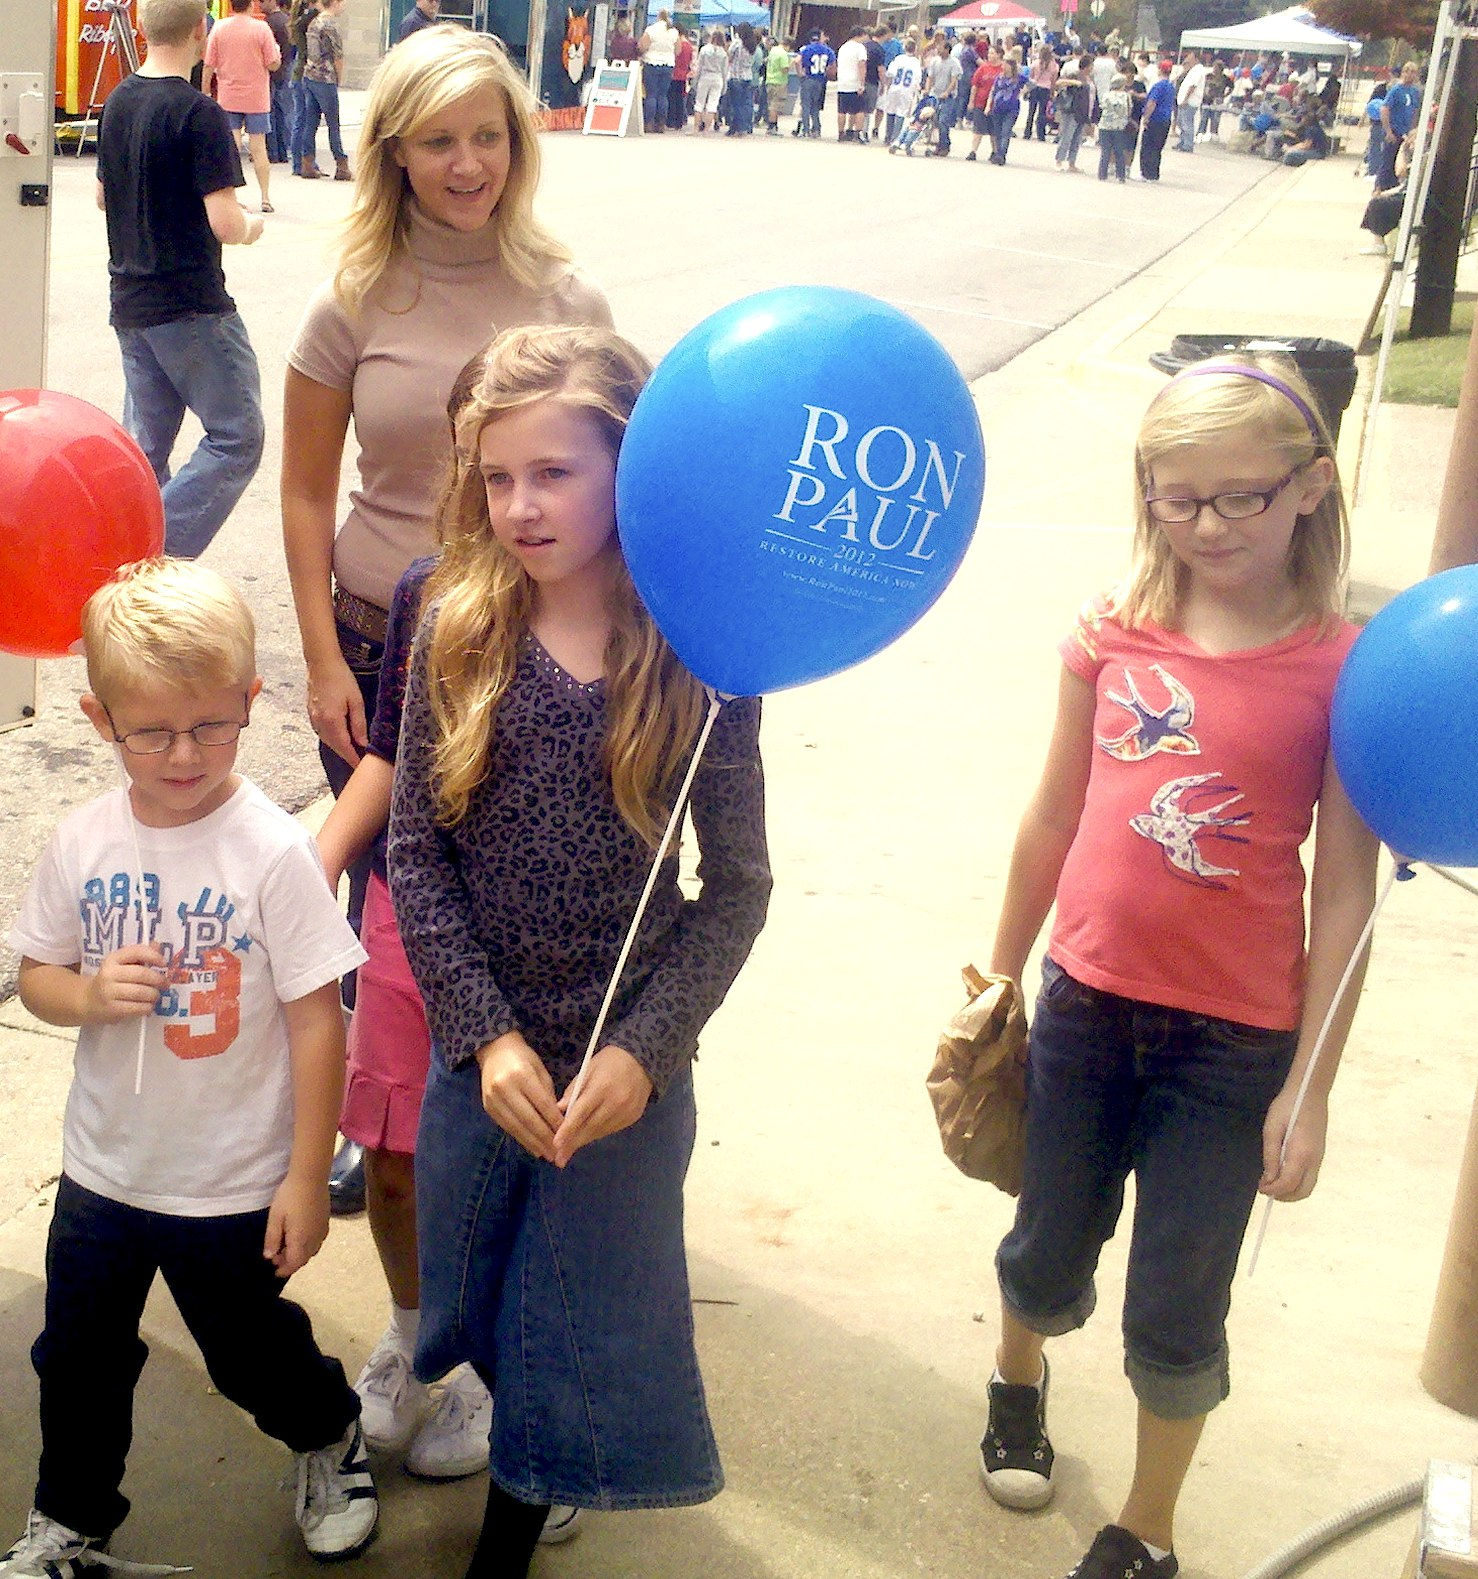 Ron Paul 2012 Balloons